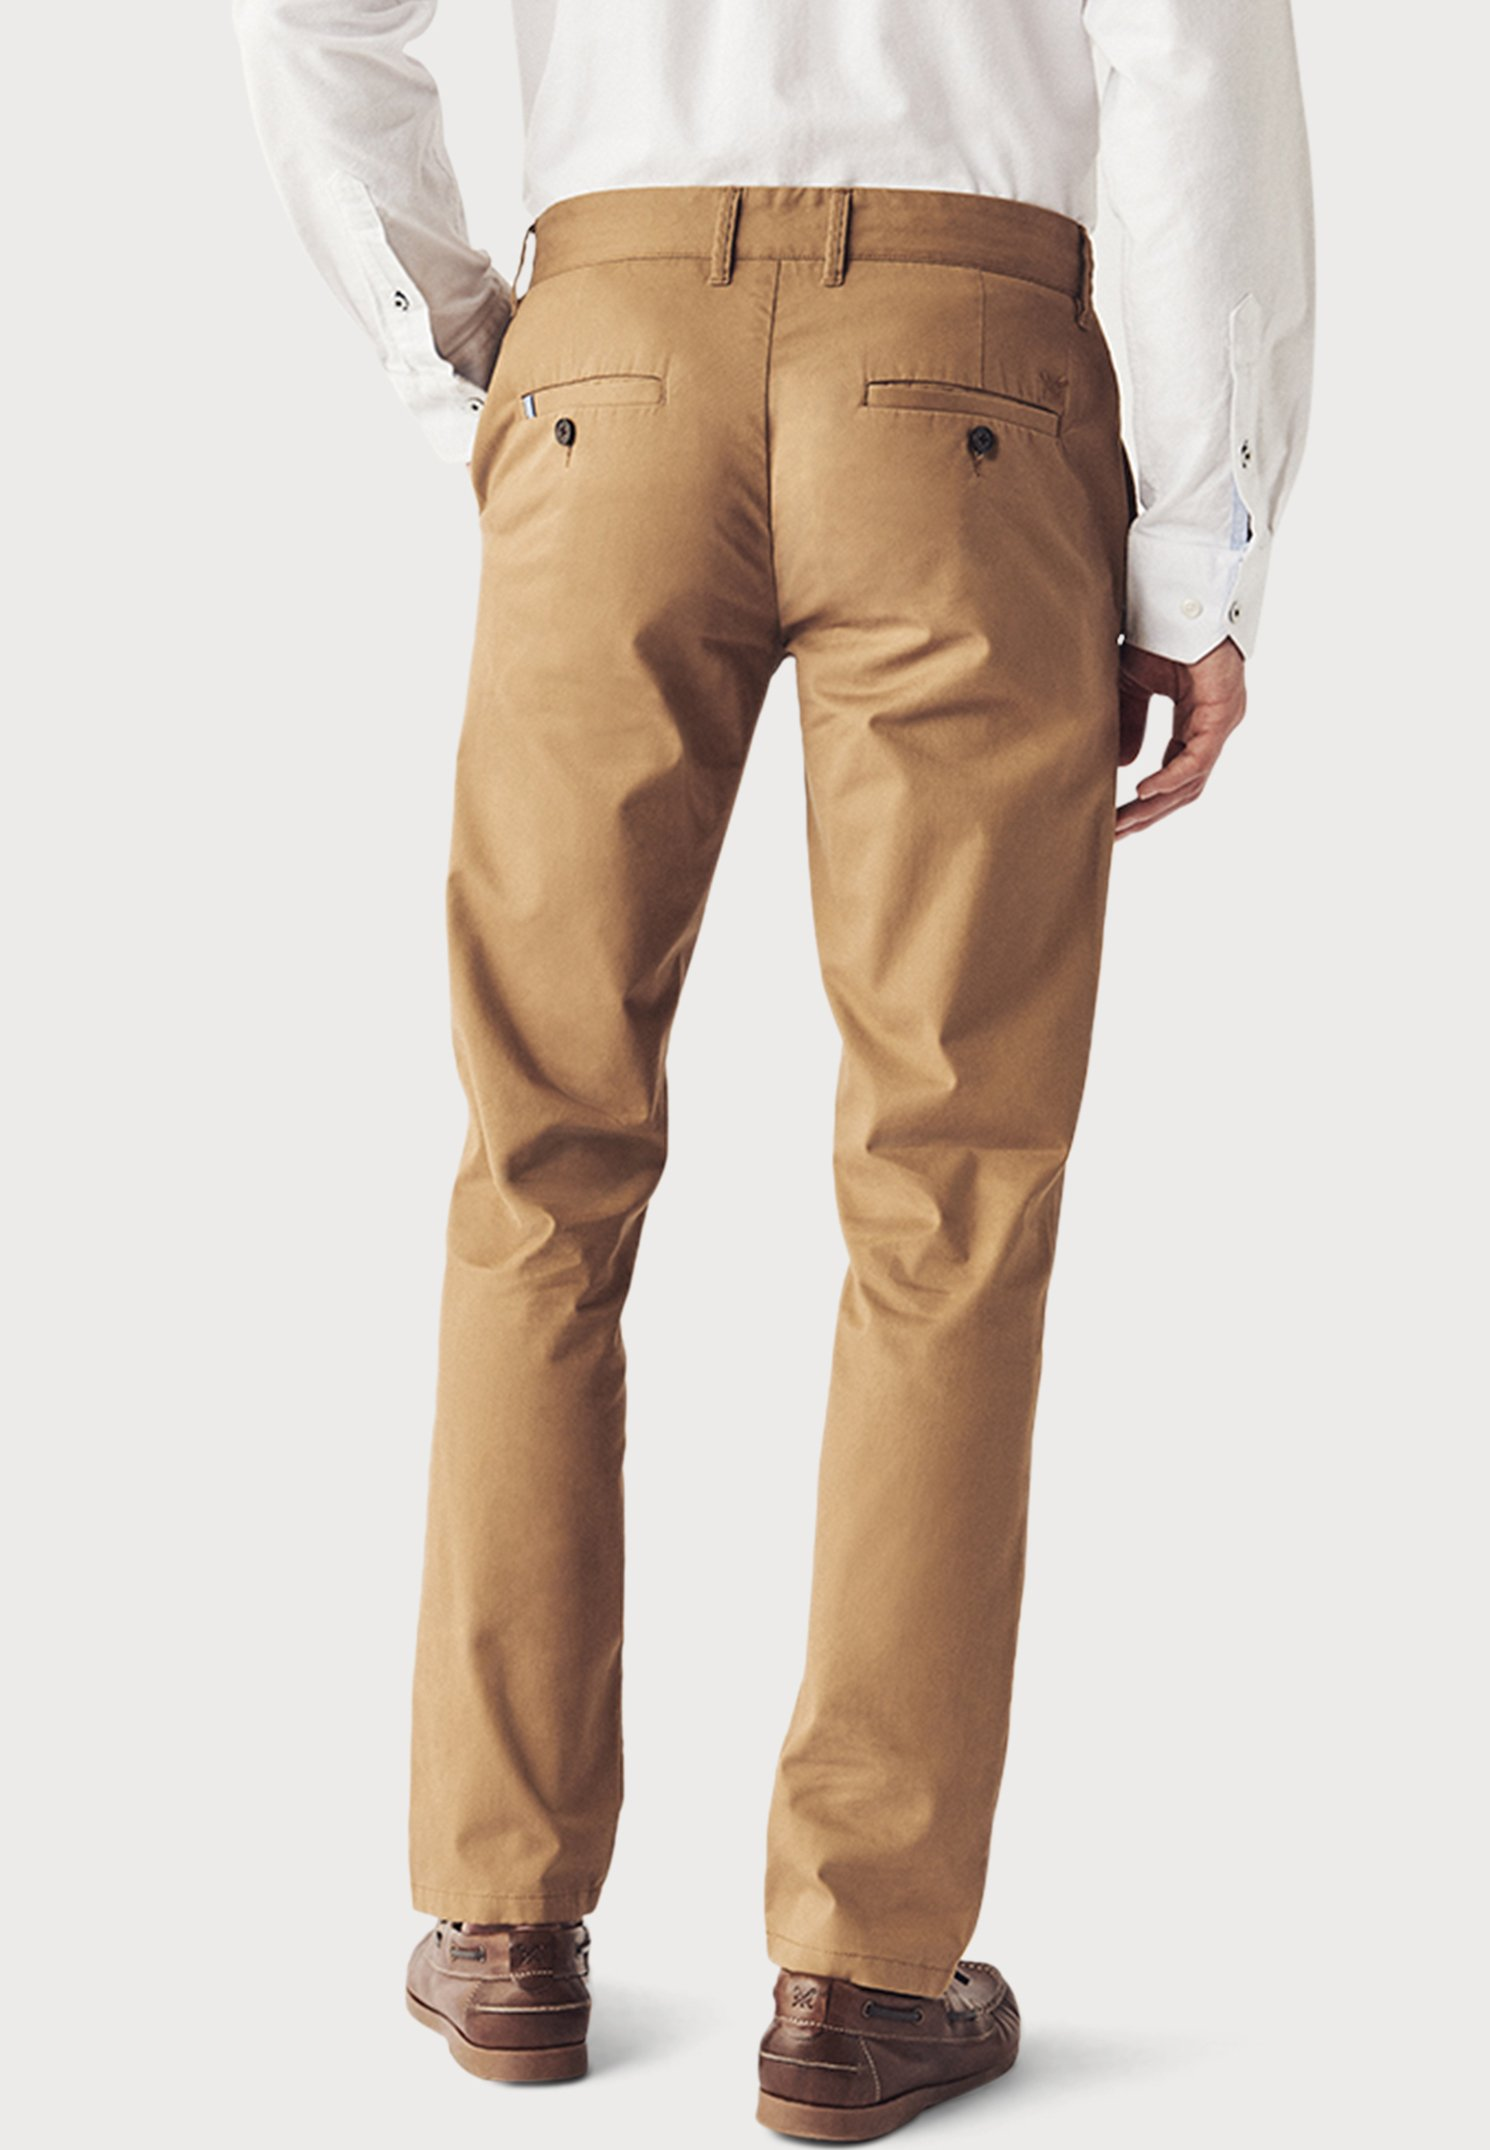 Crew Clothing Company Chinos - brown